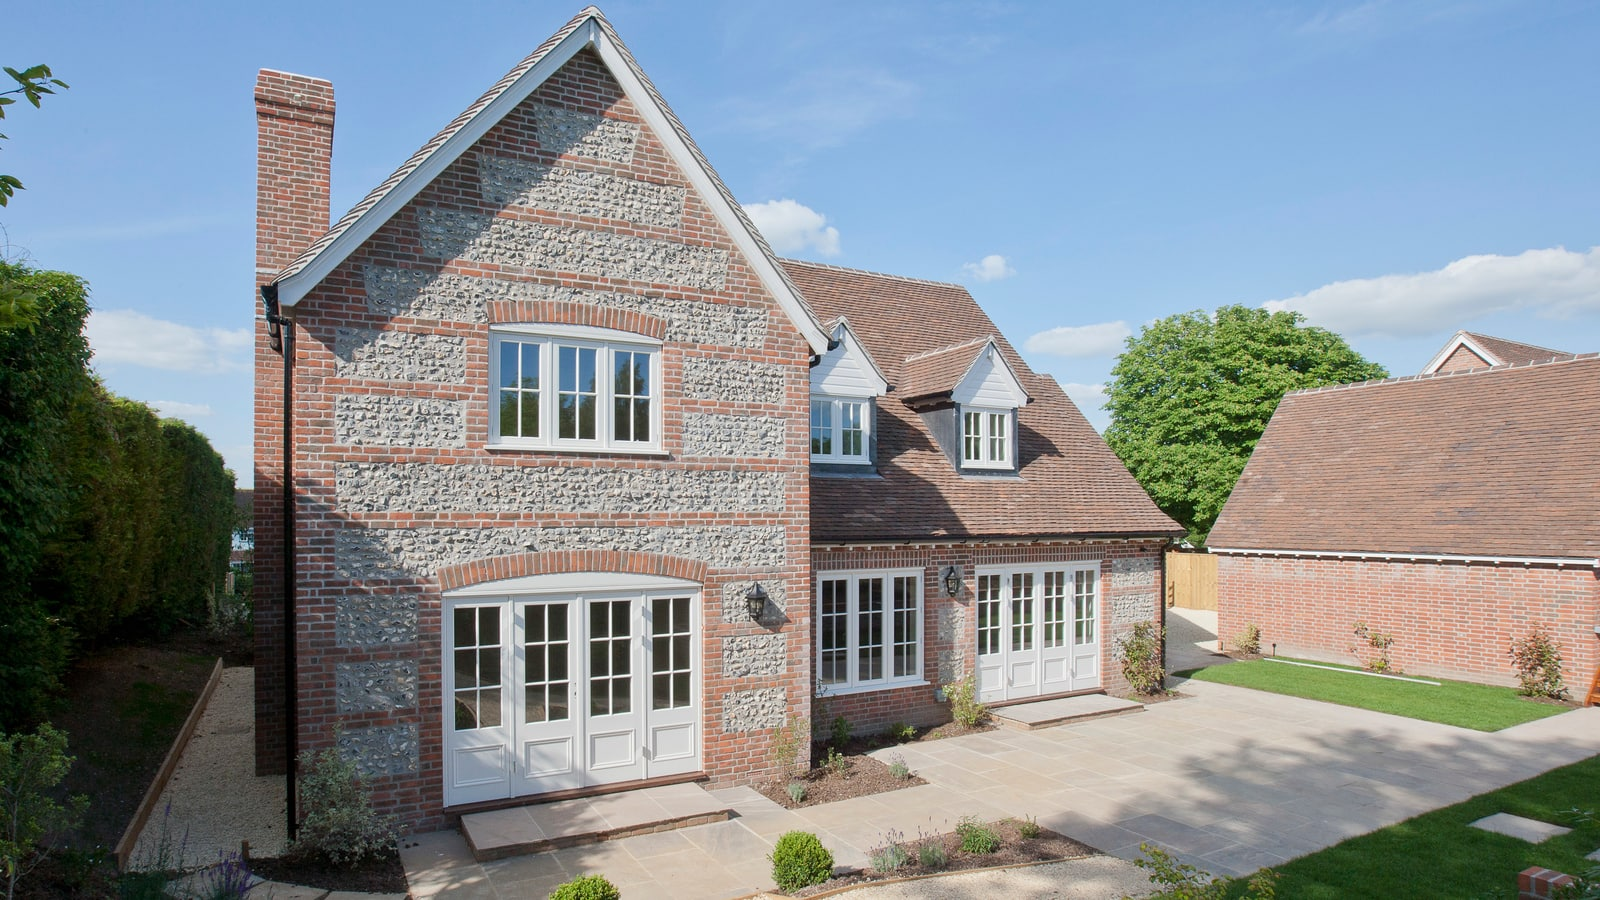 Rear of property with casement windows and French doors